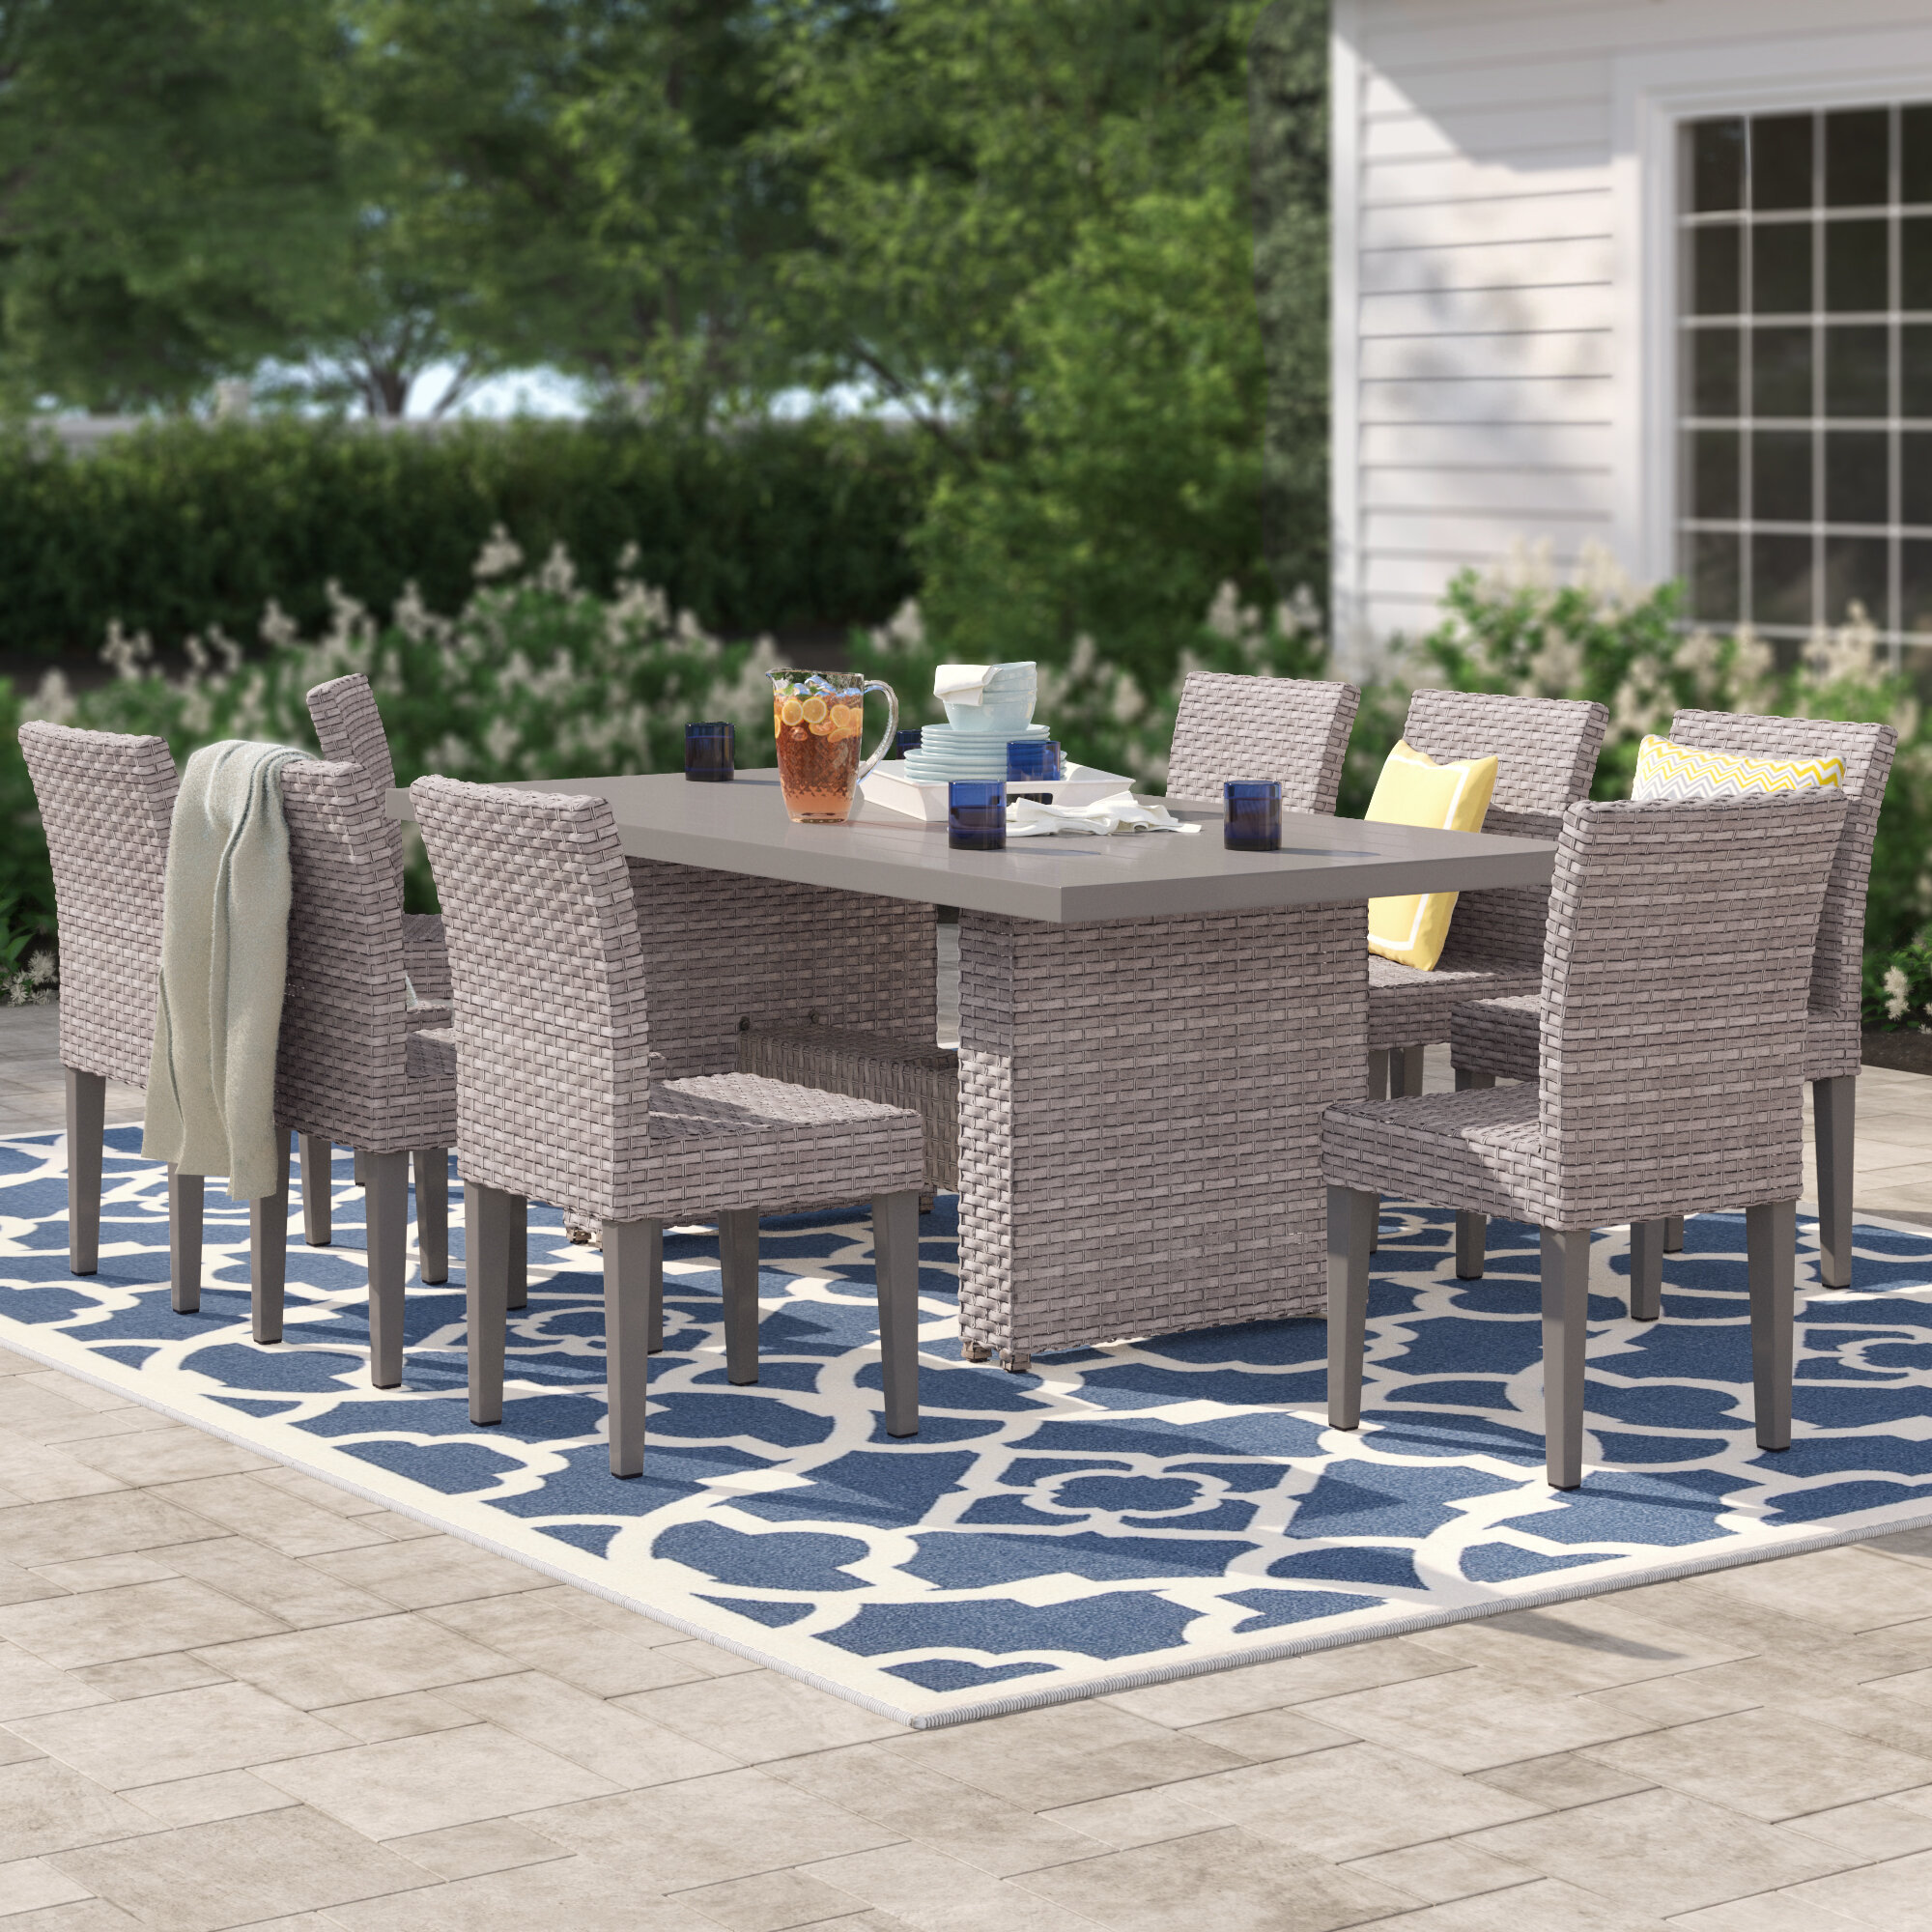 Festnight 9 Piece Wooden Outdoor Patio Dining Set Oval Folding Table with 8 Foldable Chairs Eucalyptus Wood Outdoor Furniture Space Saving for Garden Backyard Terrace Balcony